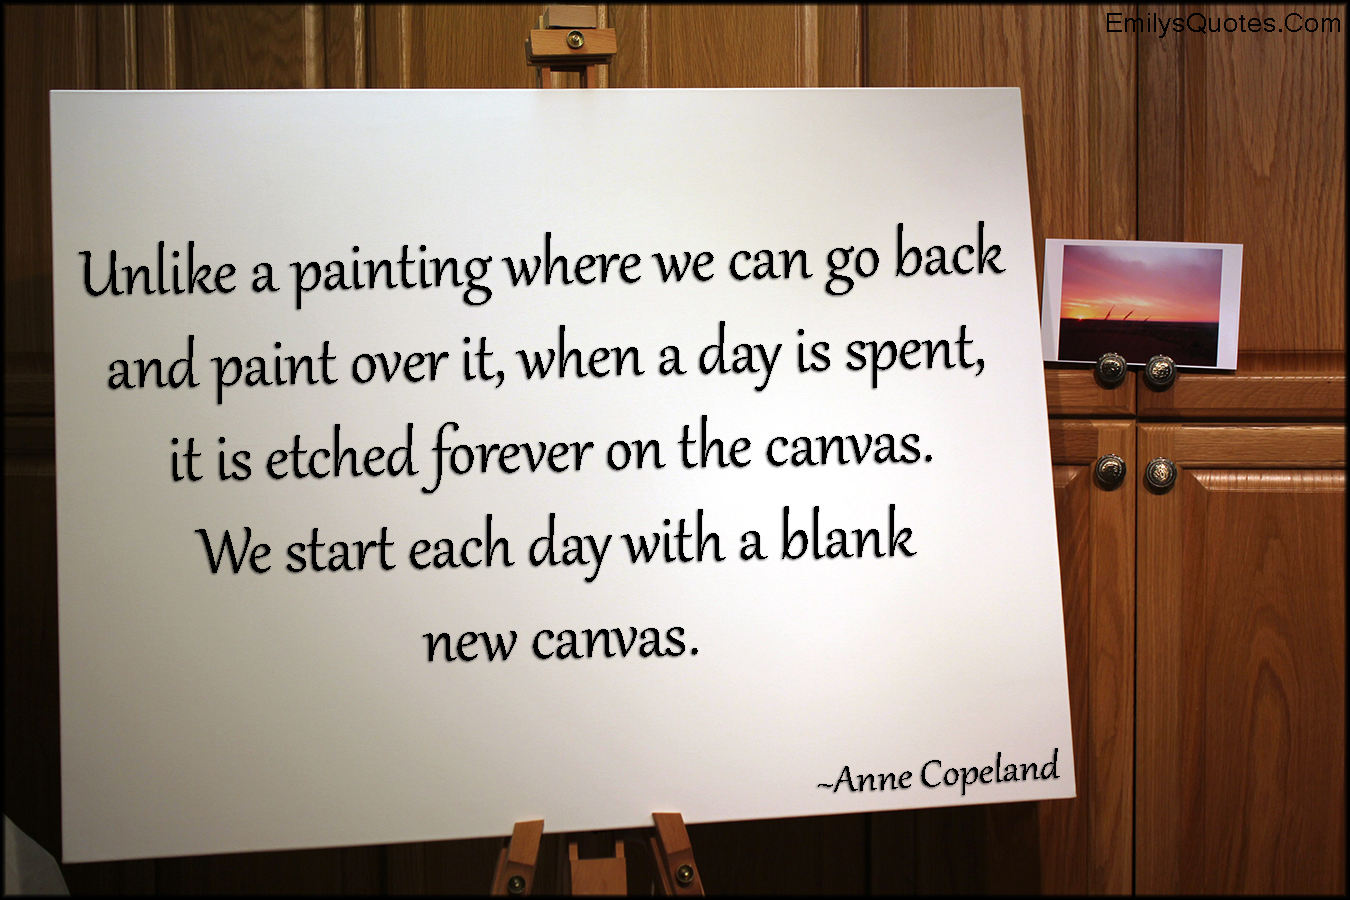 Quotes About Painting Unlike A Painting Where We Can Go Back And Paint Over It When A